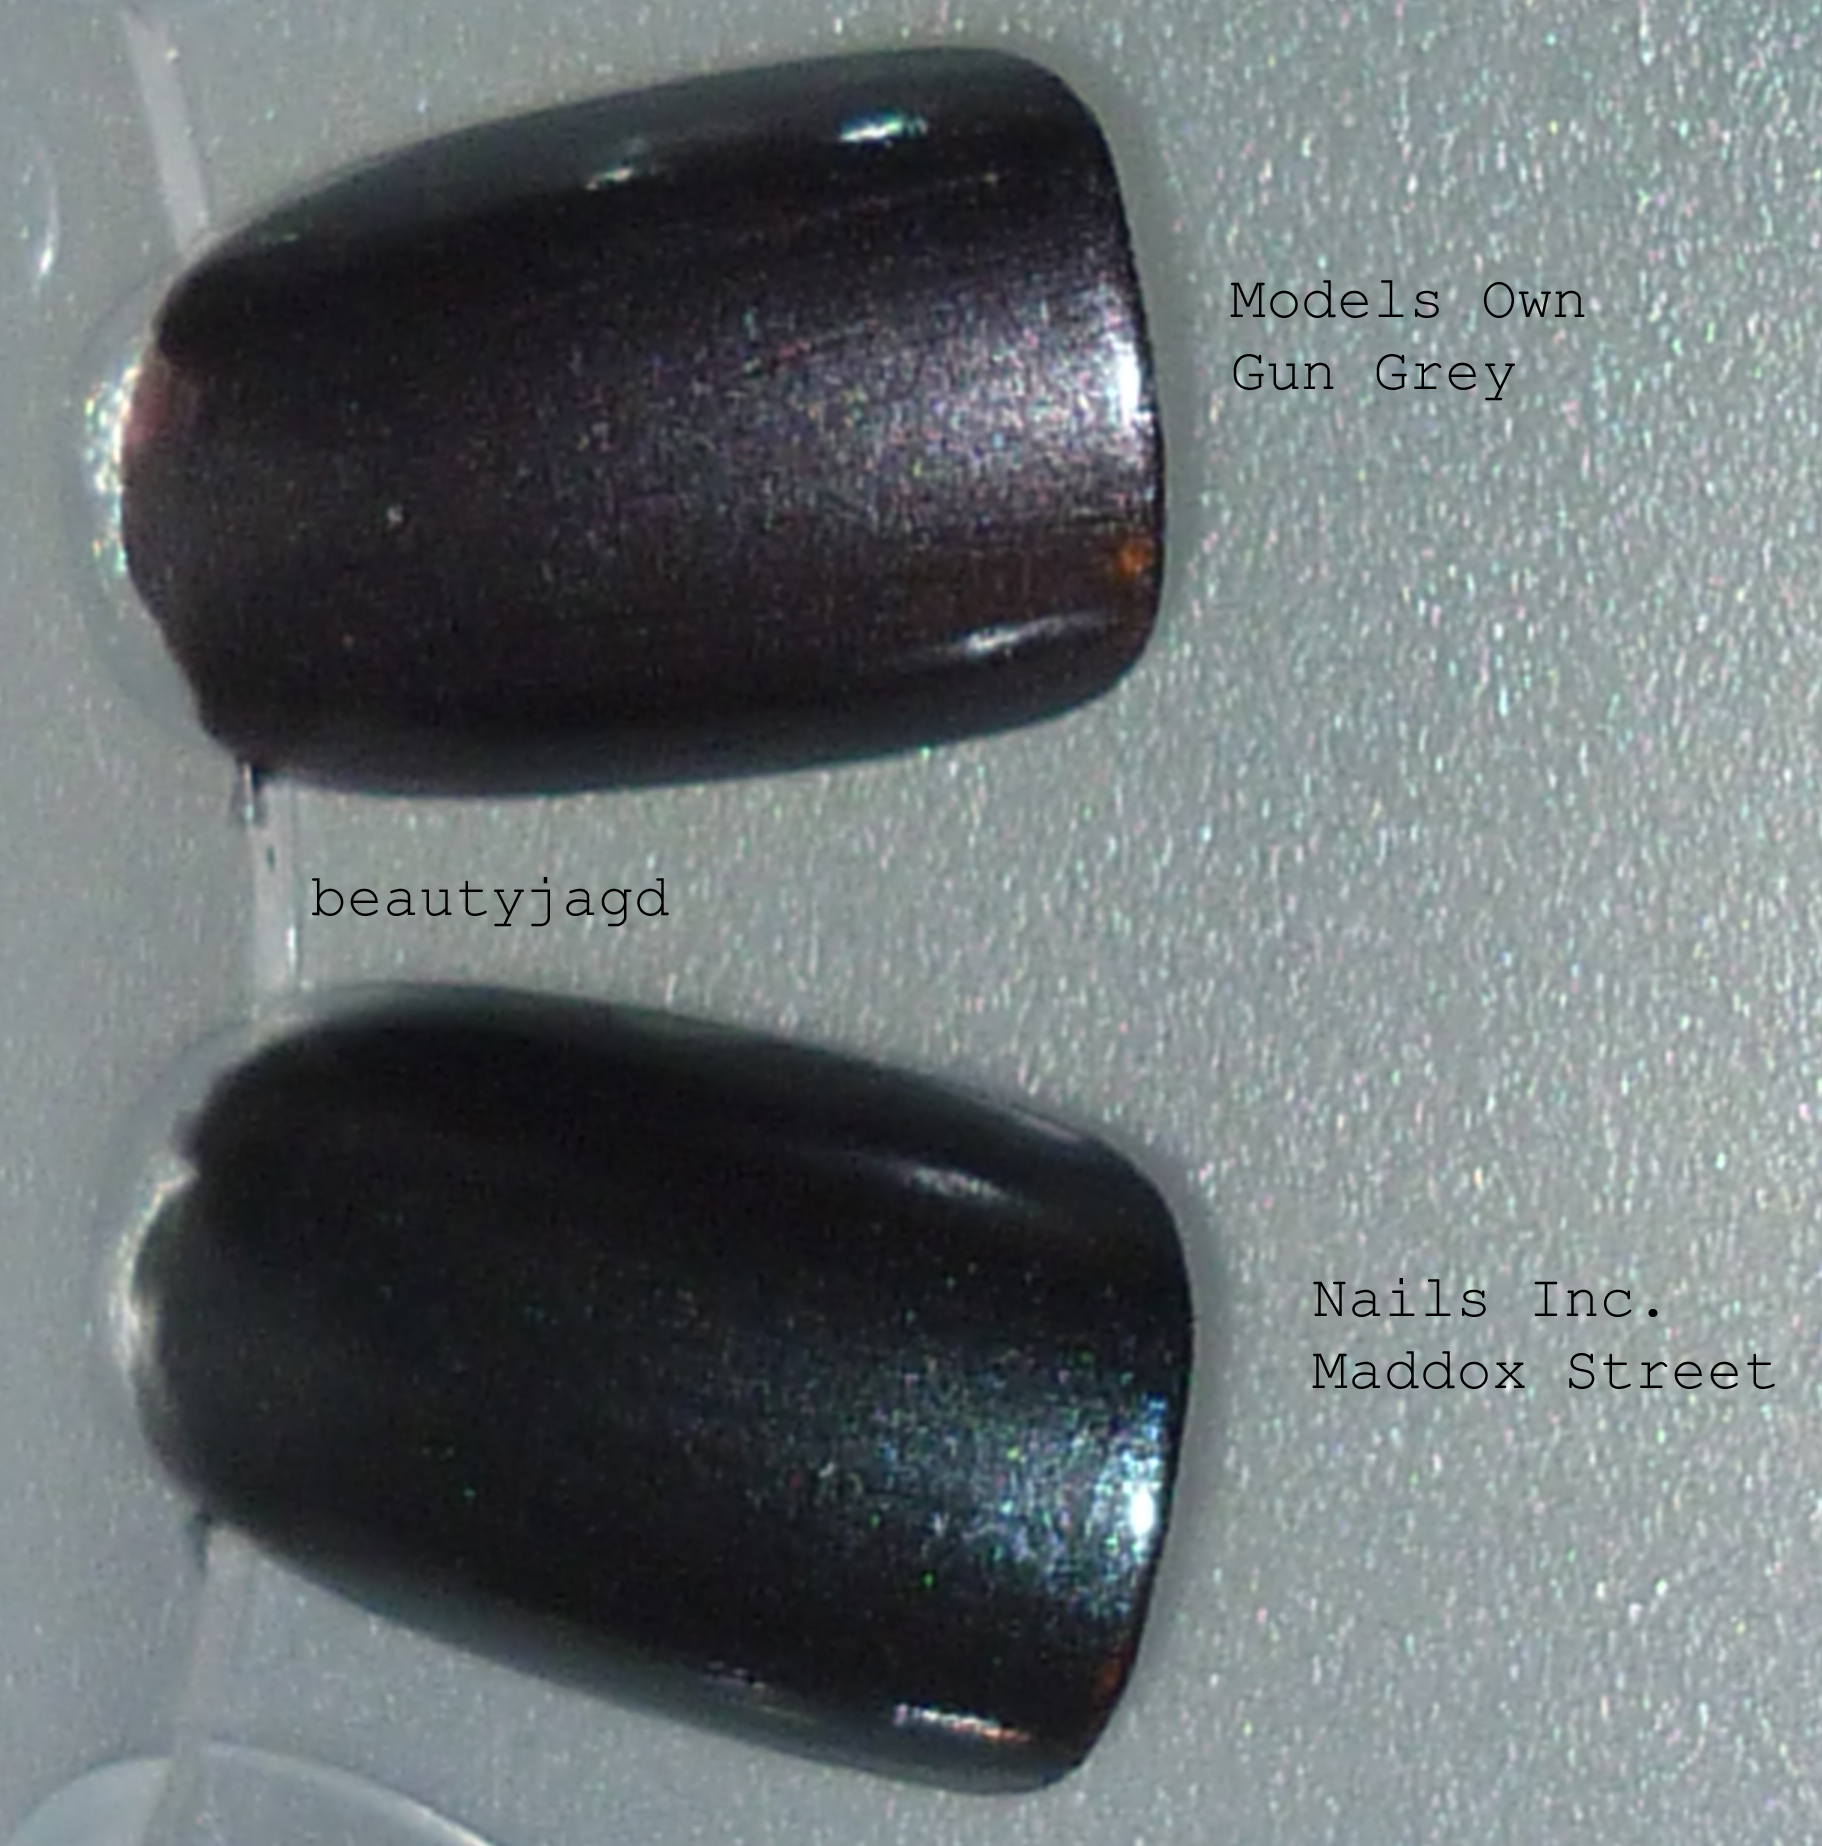 Gun Metal-Nagellacke von Models Own und Nails Inc. | Beautyjagd